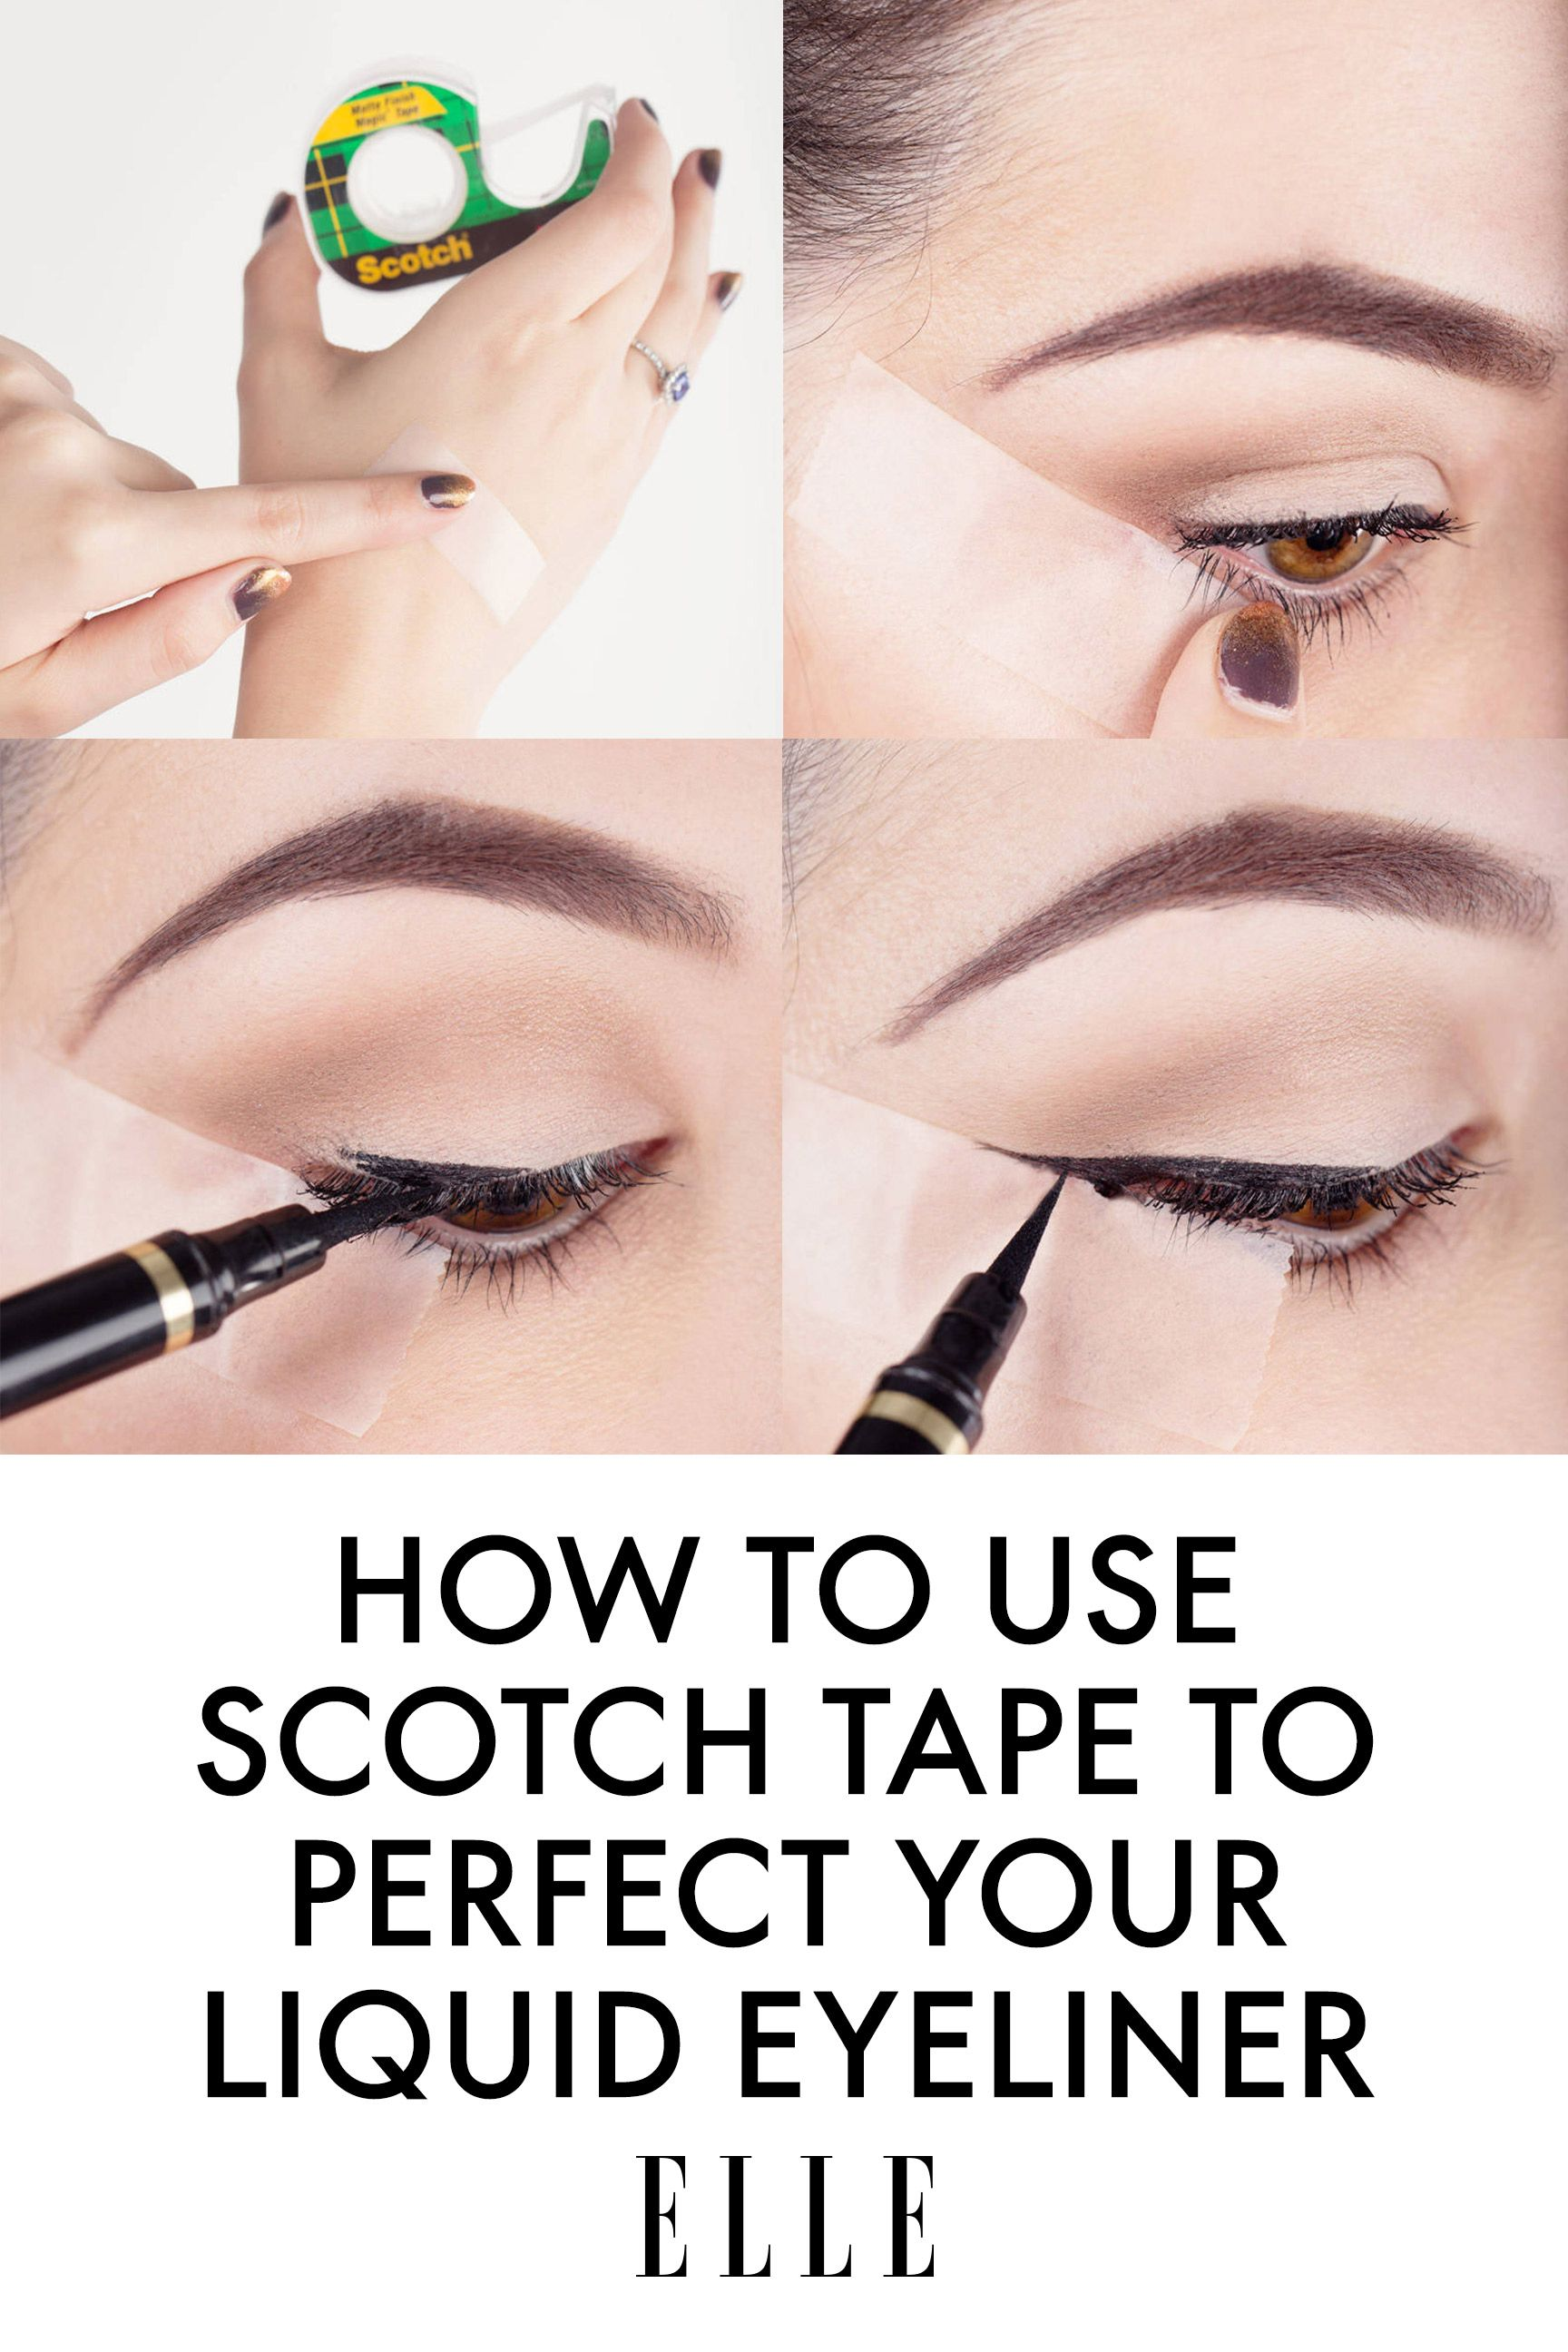 Liquid eyeliner tips scotch tape tips to perfect your liquid eyeliner